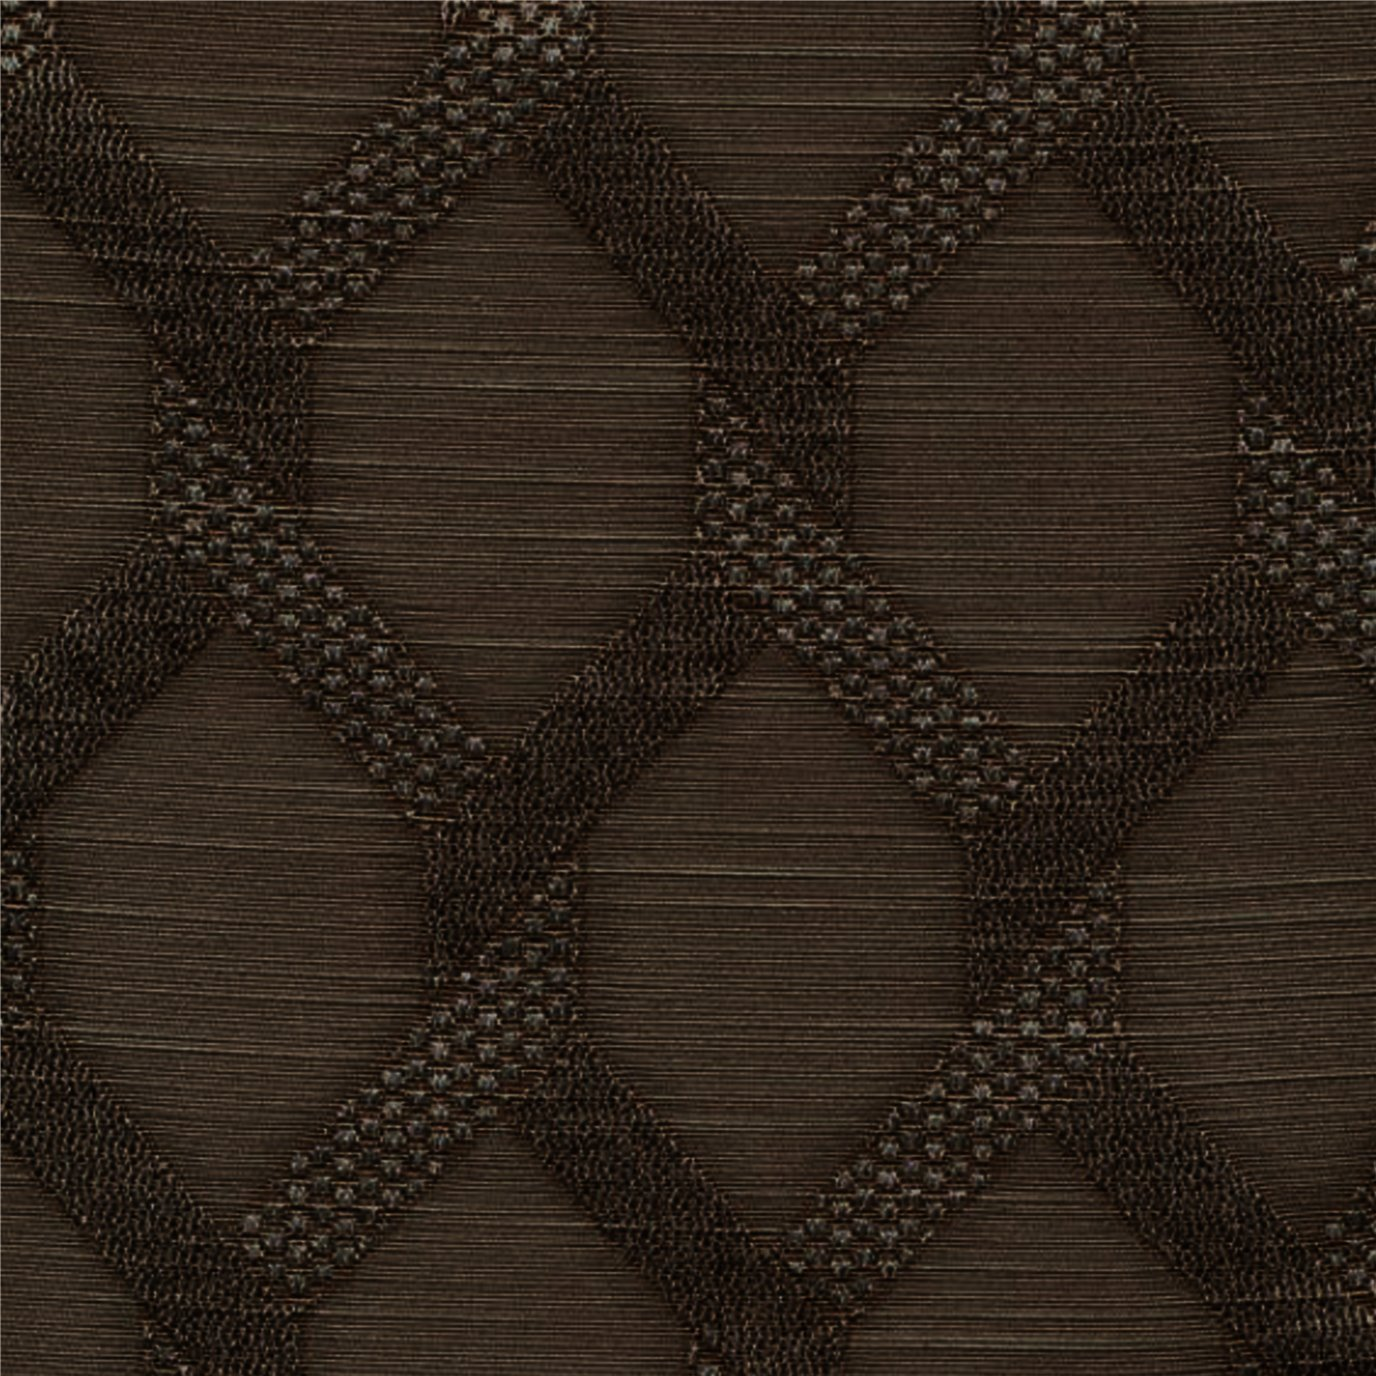 Malden Chocolate Fabric by the Yard